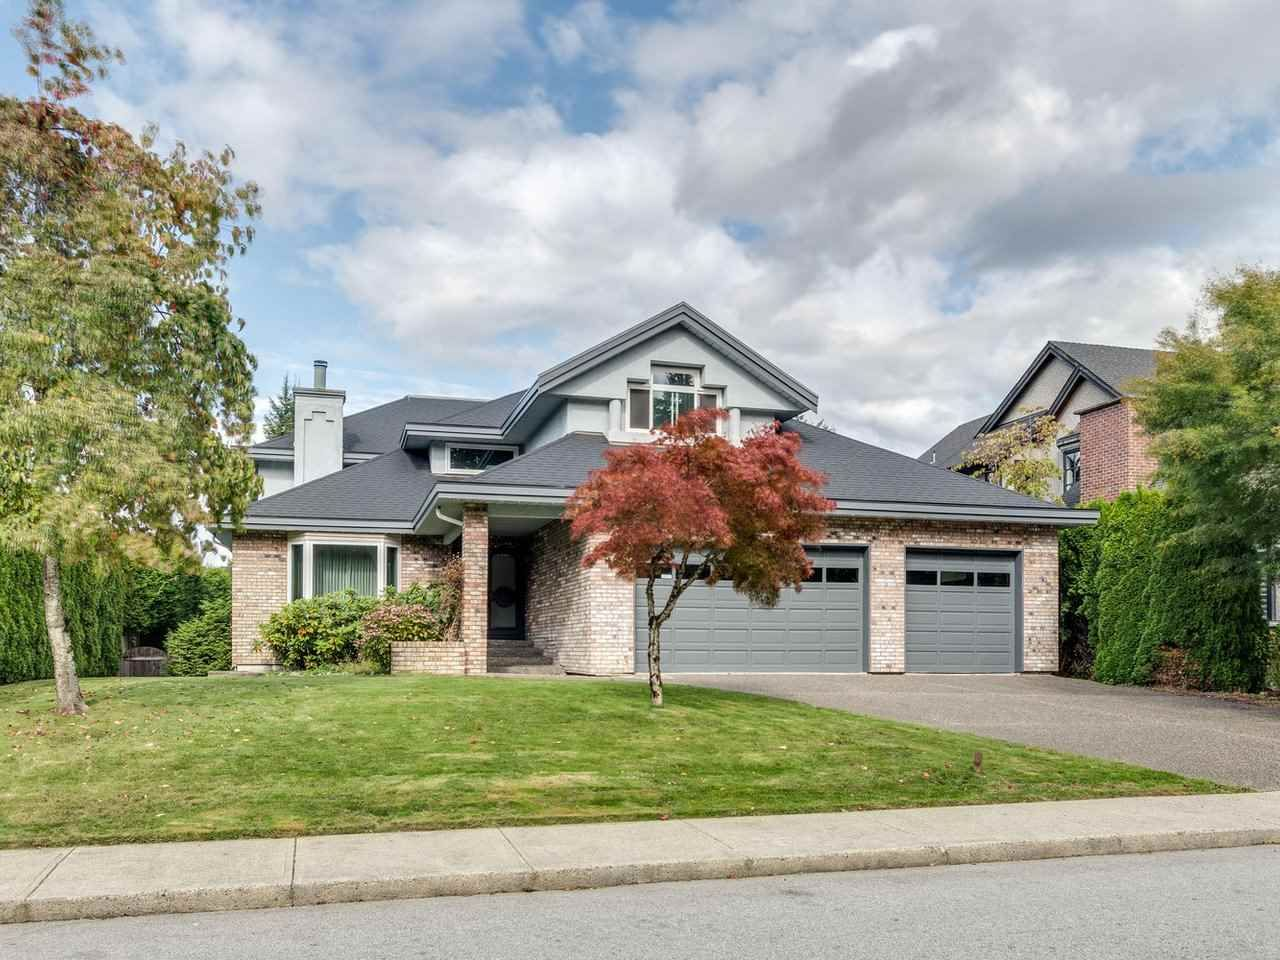 Main Photo: 835 SPRICE Avenue in Coquitlam: Coquitlam West House for sale : MLS®# R2408743